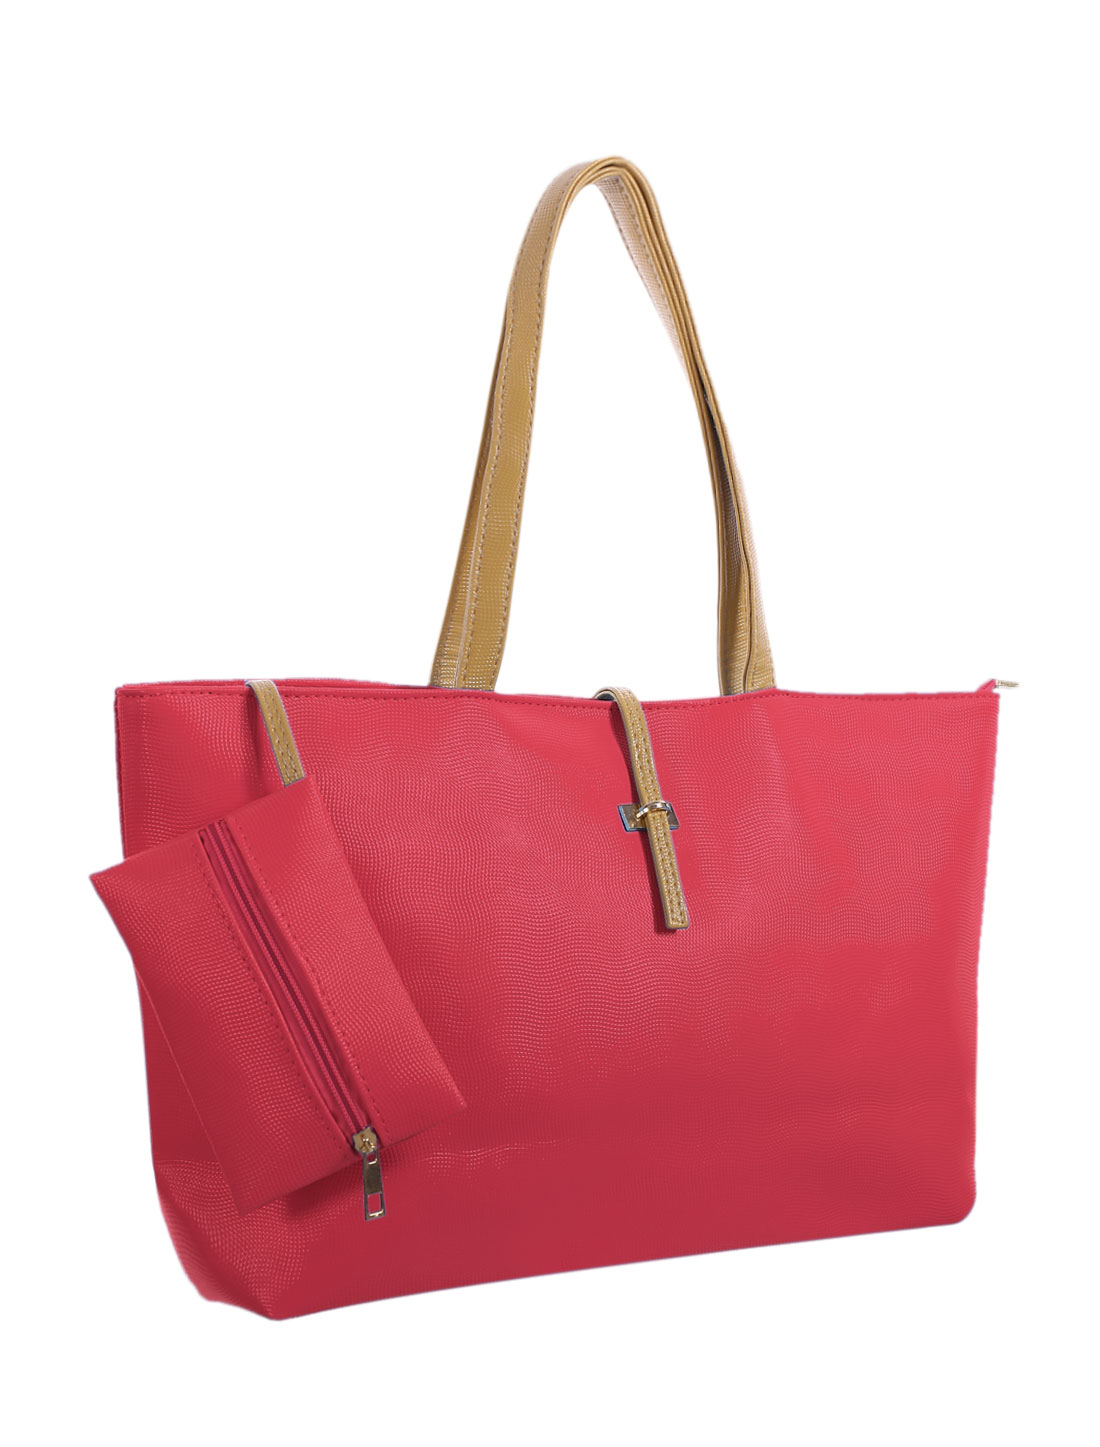 Women Two Top Handles Textured Faux Leather Tote w Pouch Watermelon Red